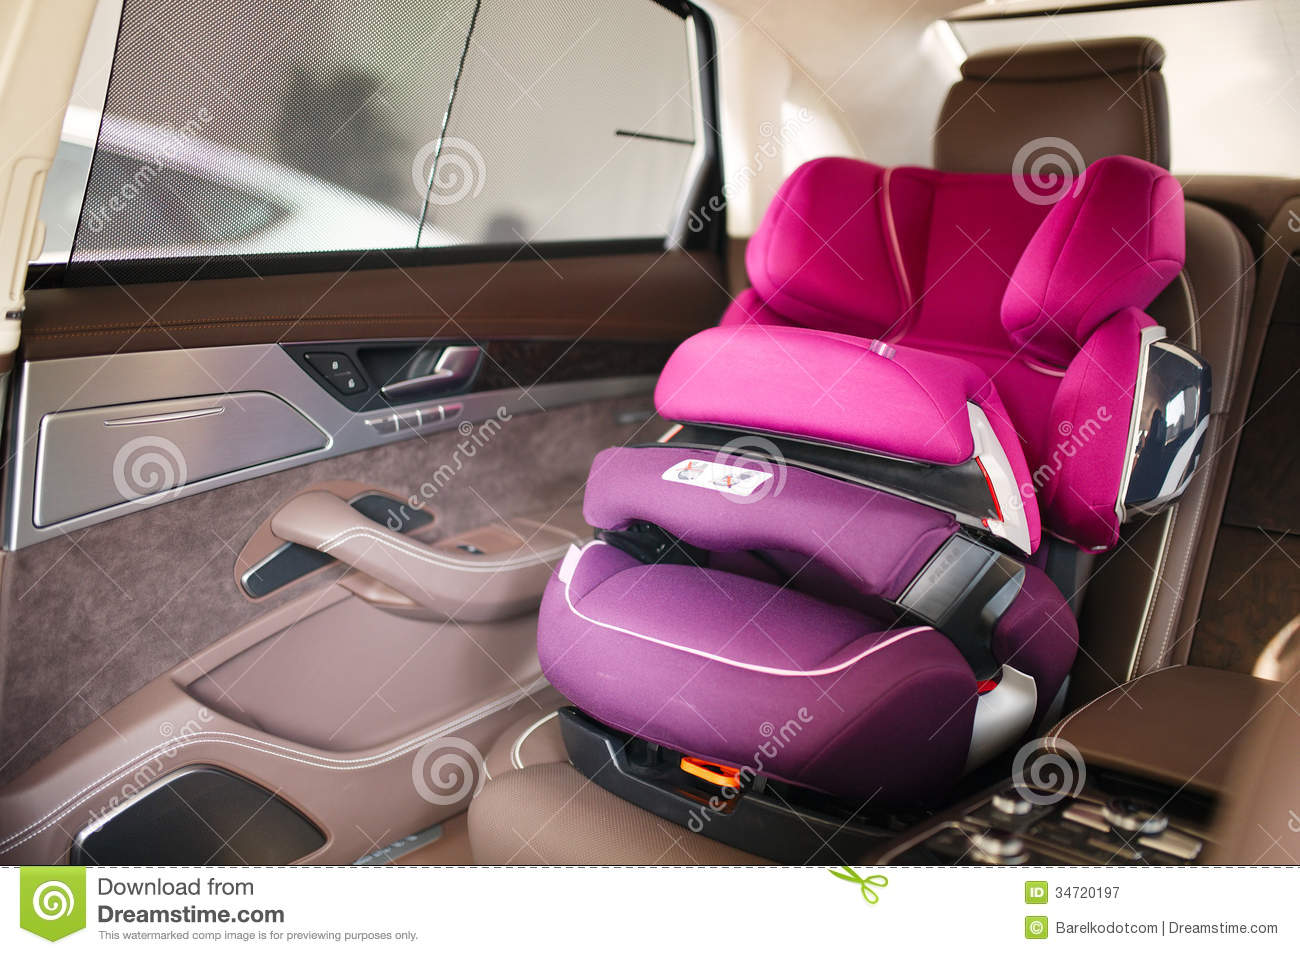 Watch also Wholesale Hetalia Body Pillow besides A 52181121 furthermore Royalty Free Stock Photography Baby Car Seat Luxury Safety Image34720197 together with 360453170984. on doll stroller car seat